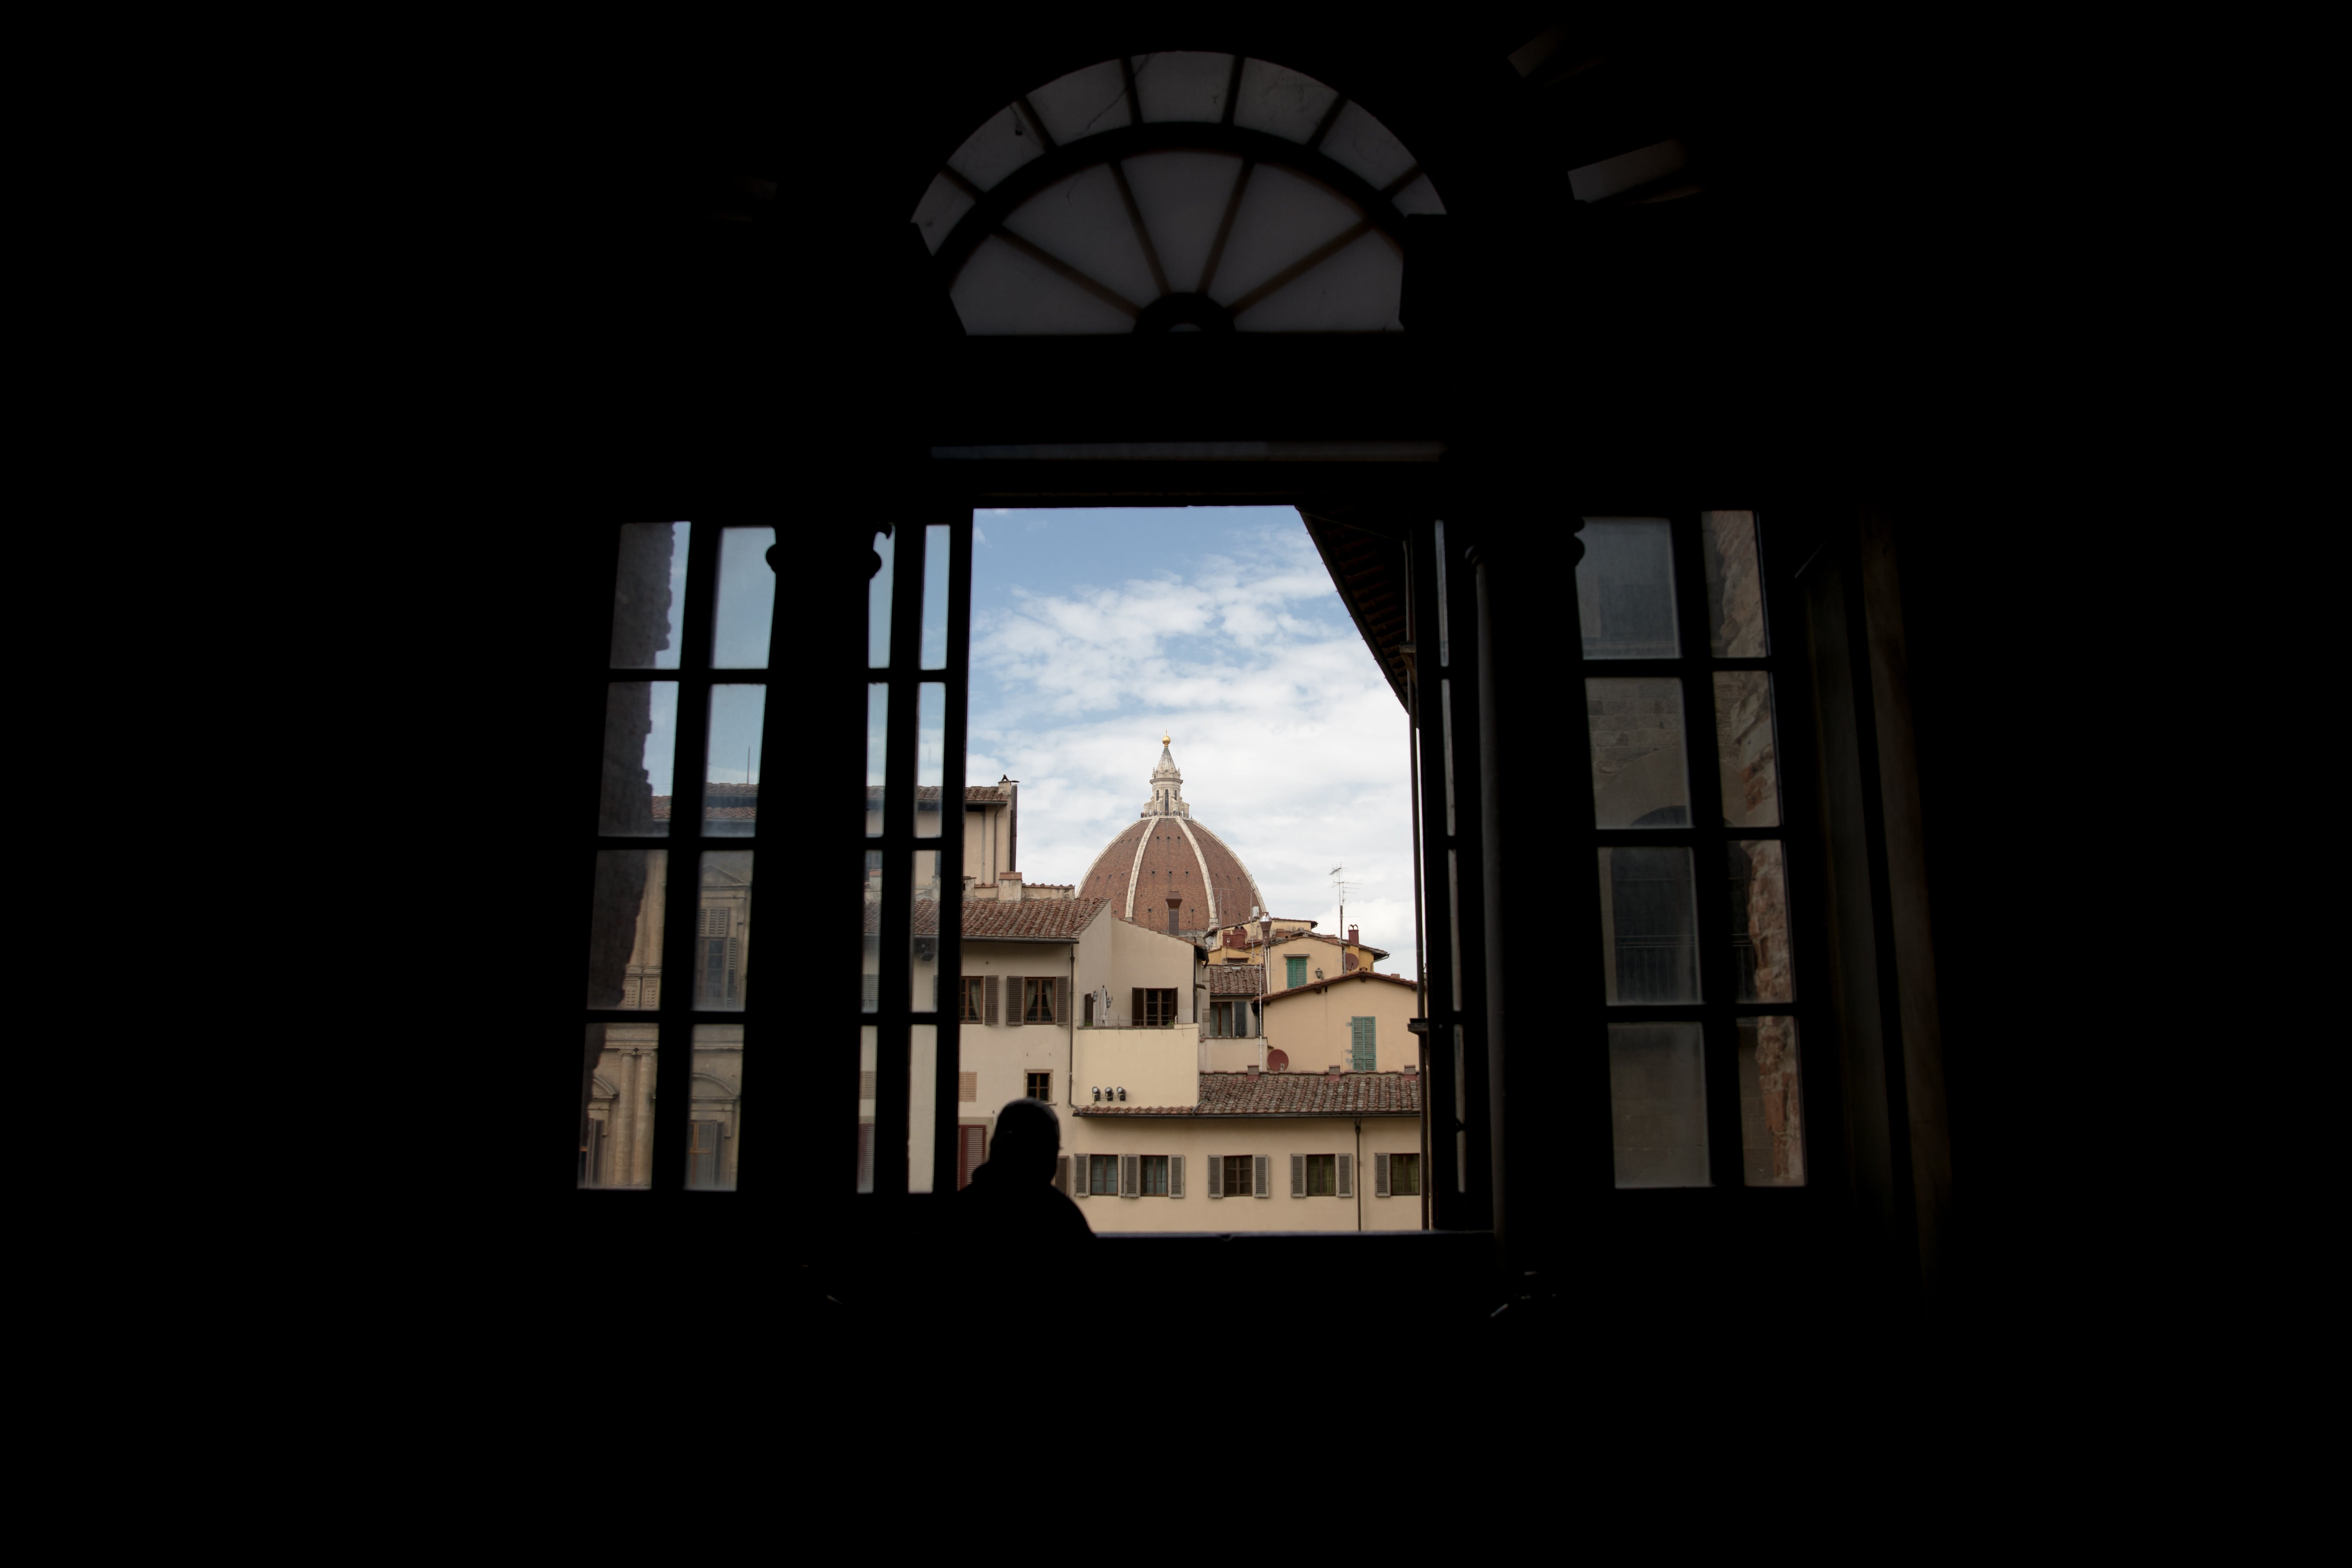 Free stock photo of florence cathedral italy tuscany windows firenze